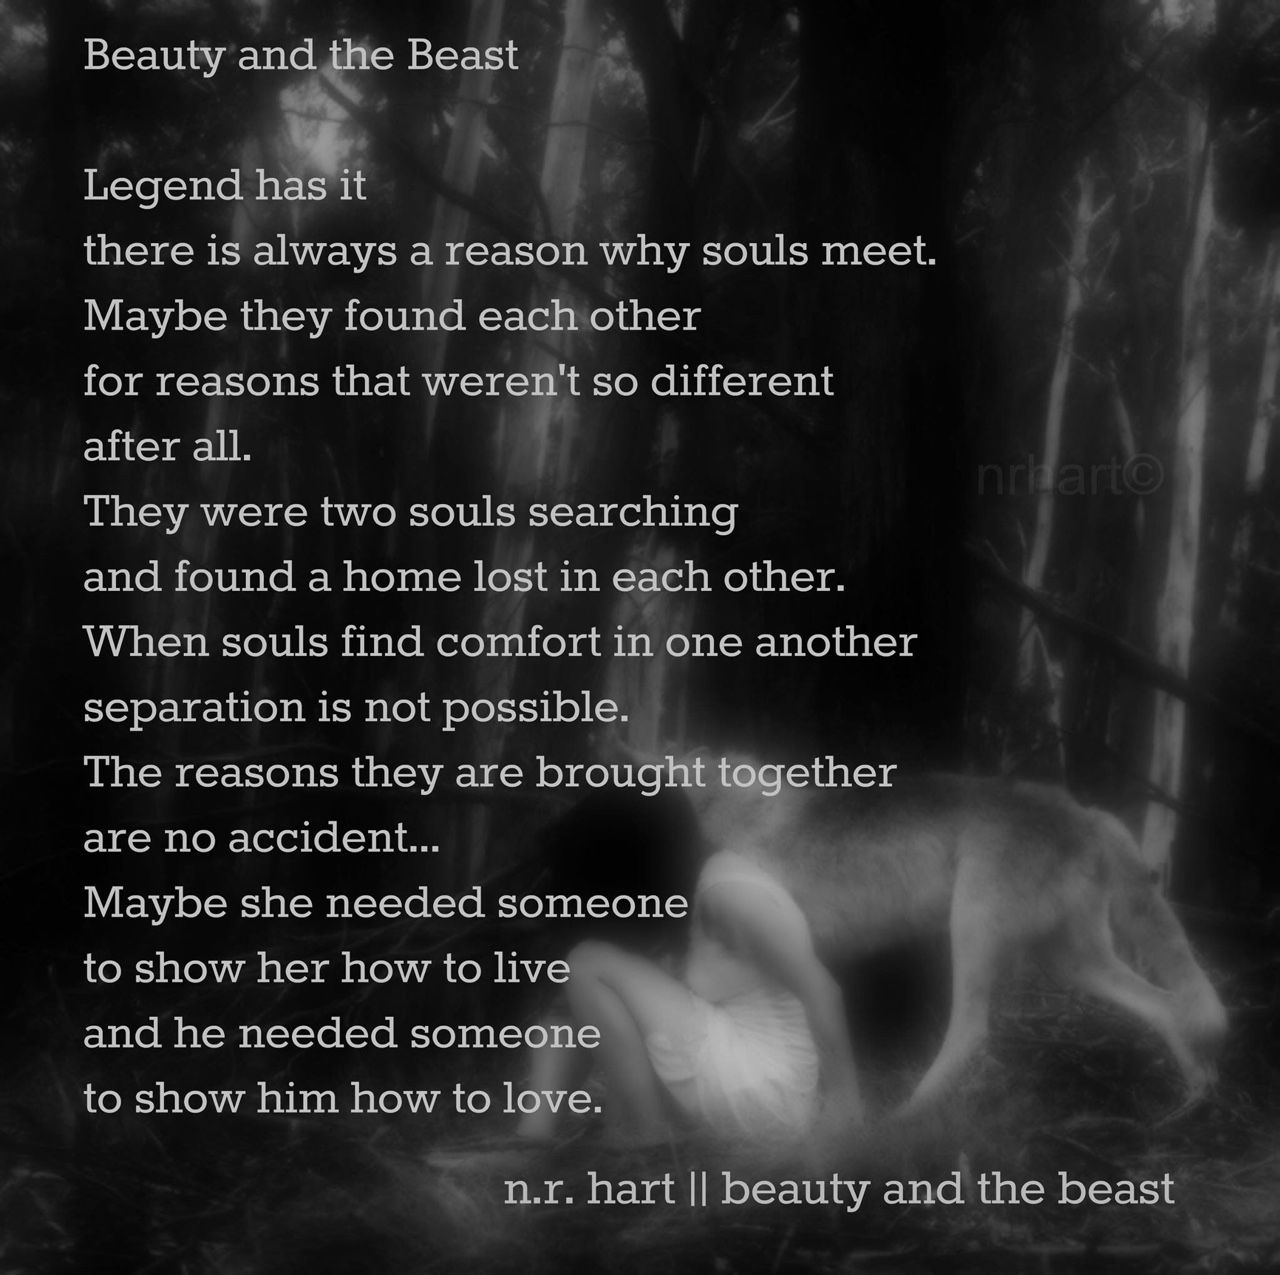 flirting quotes about beauty and the beast full song download